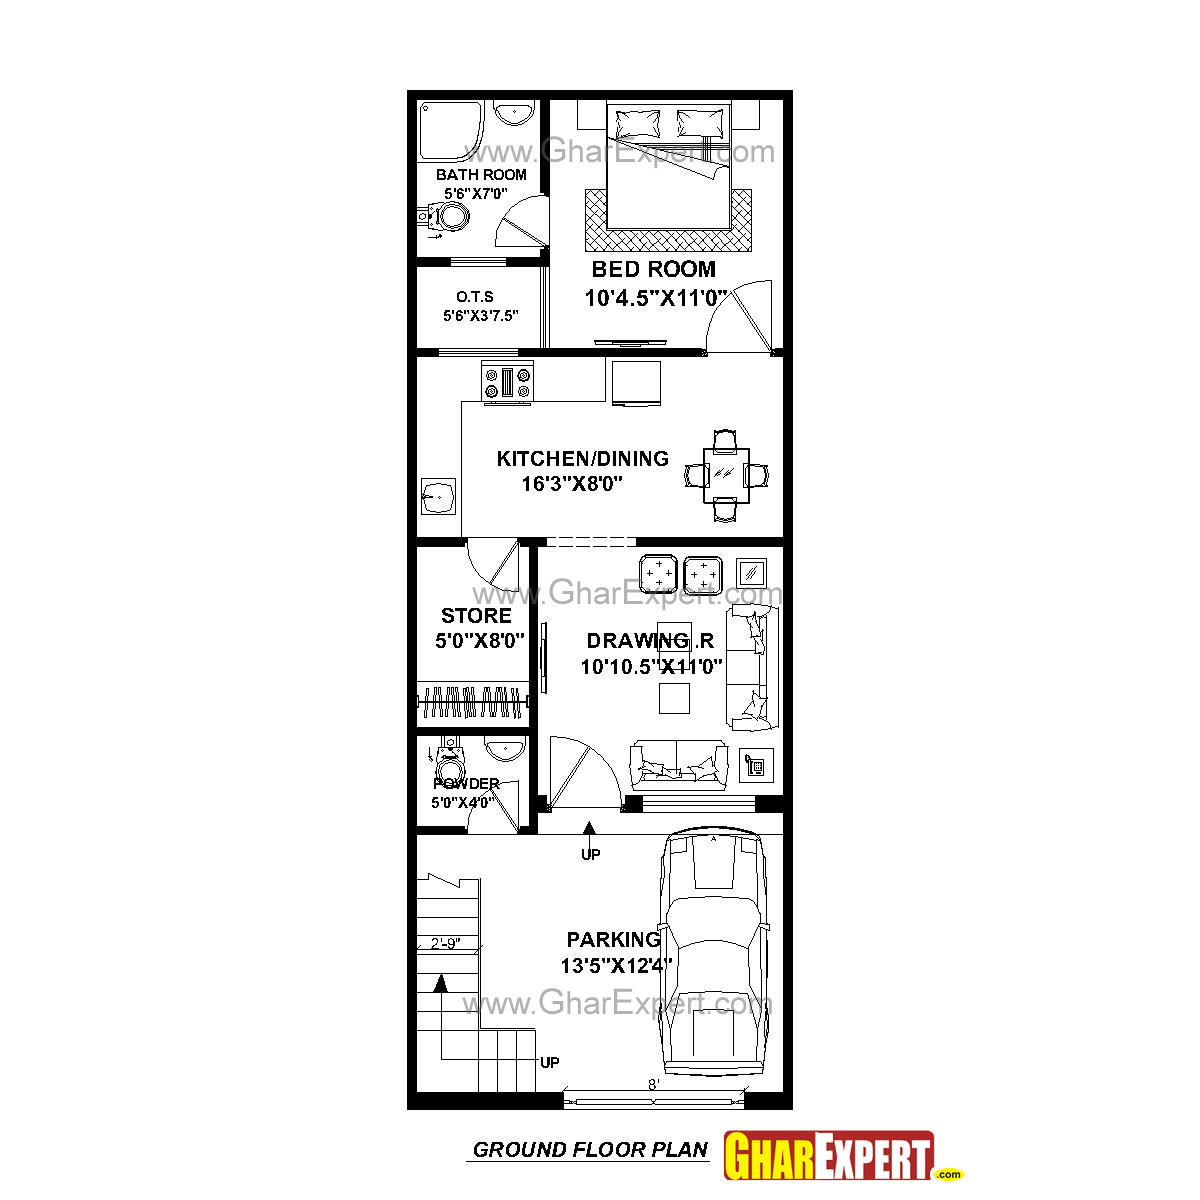 House plan for 17 feet by 45 feet plot plot size 85 for 10 x 18 square feet